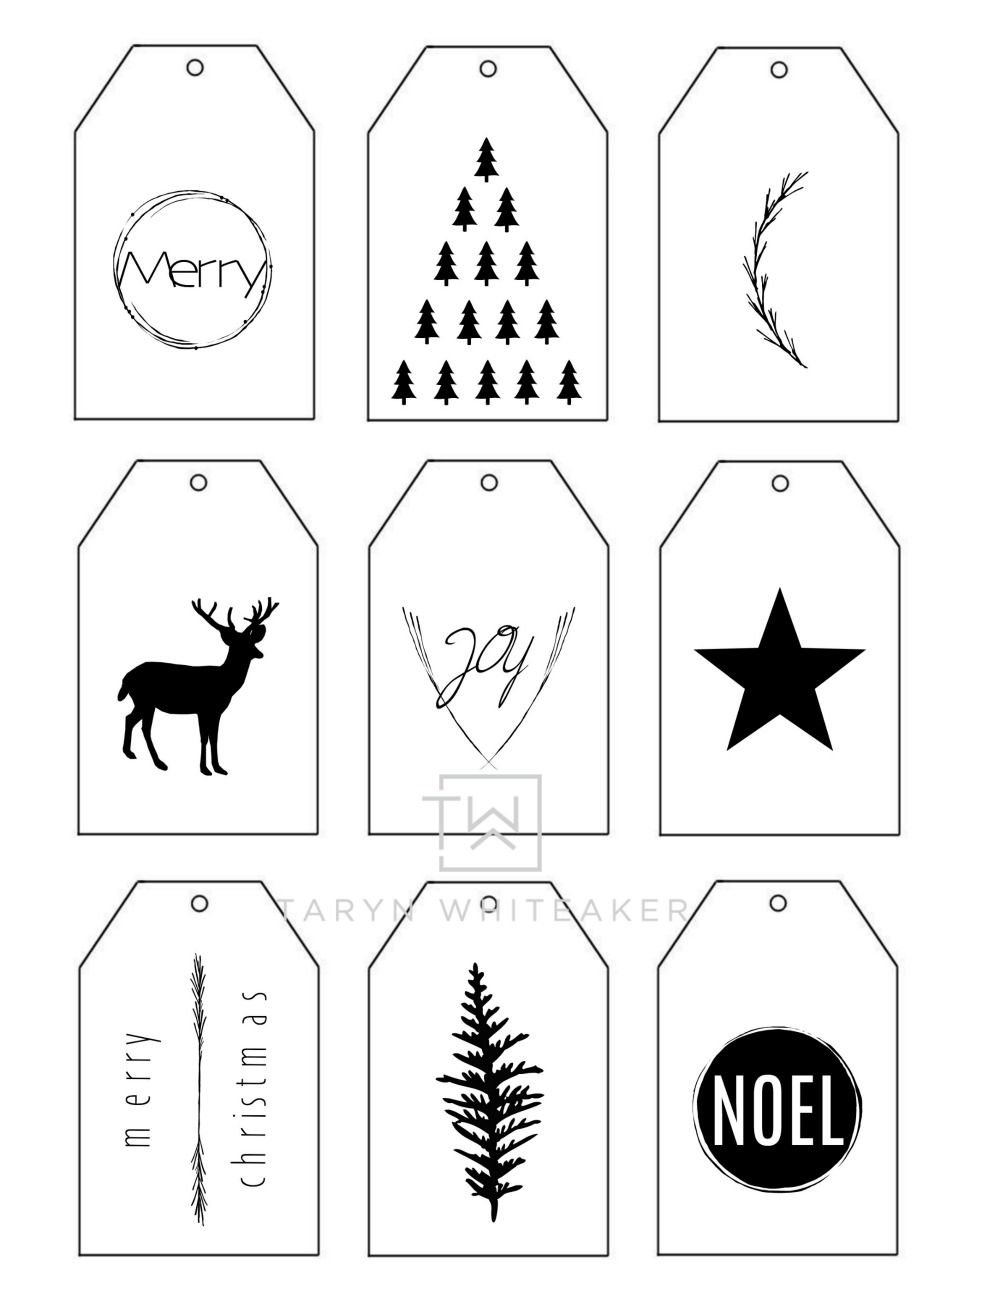 image relating to Christmas Tags Printable identify Printable Xmas Reward Tags - Taryn Whiteaker